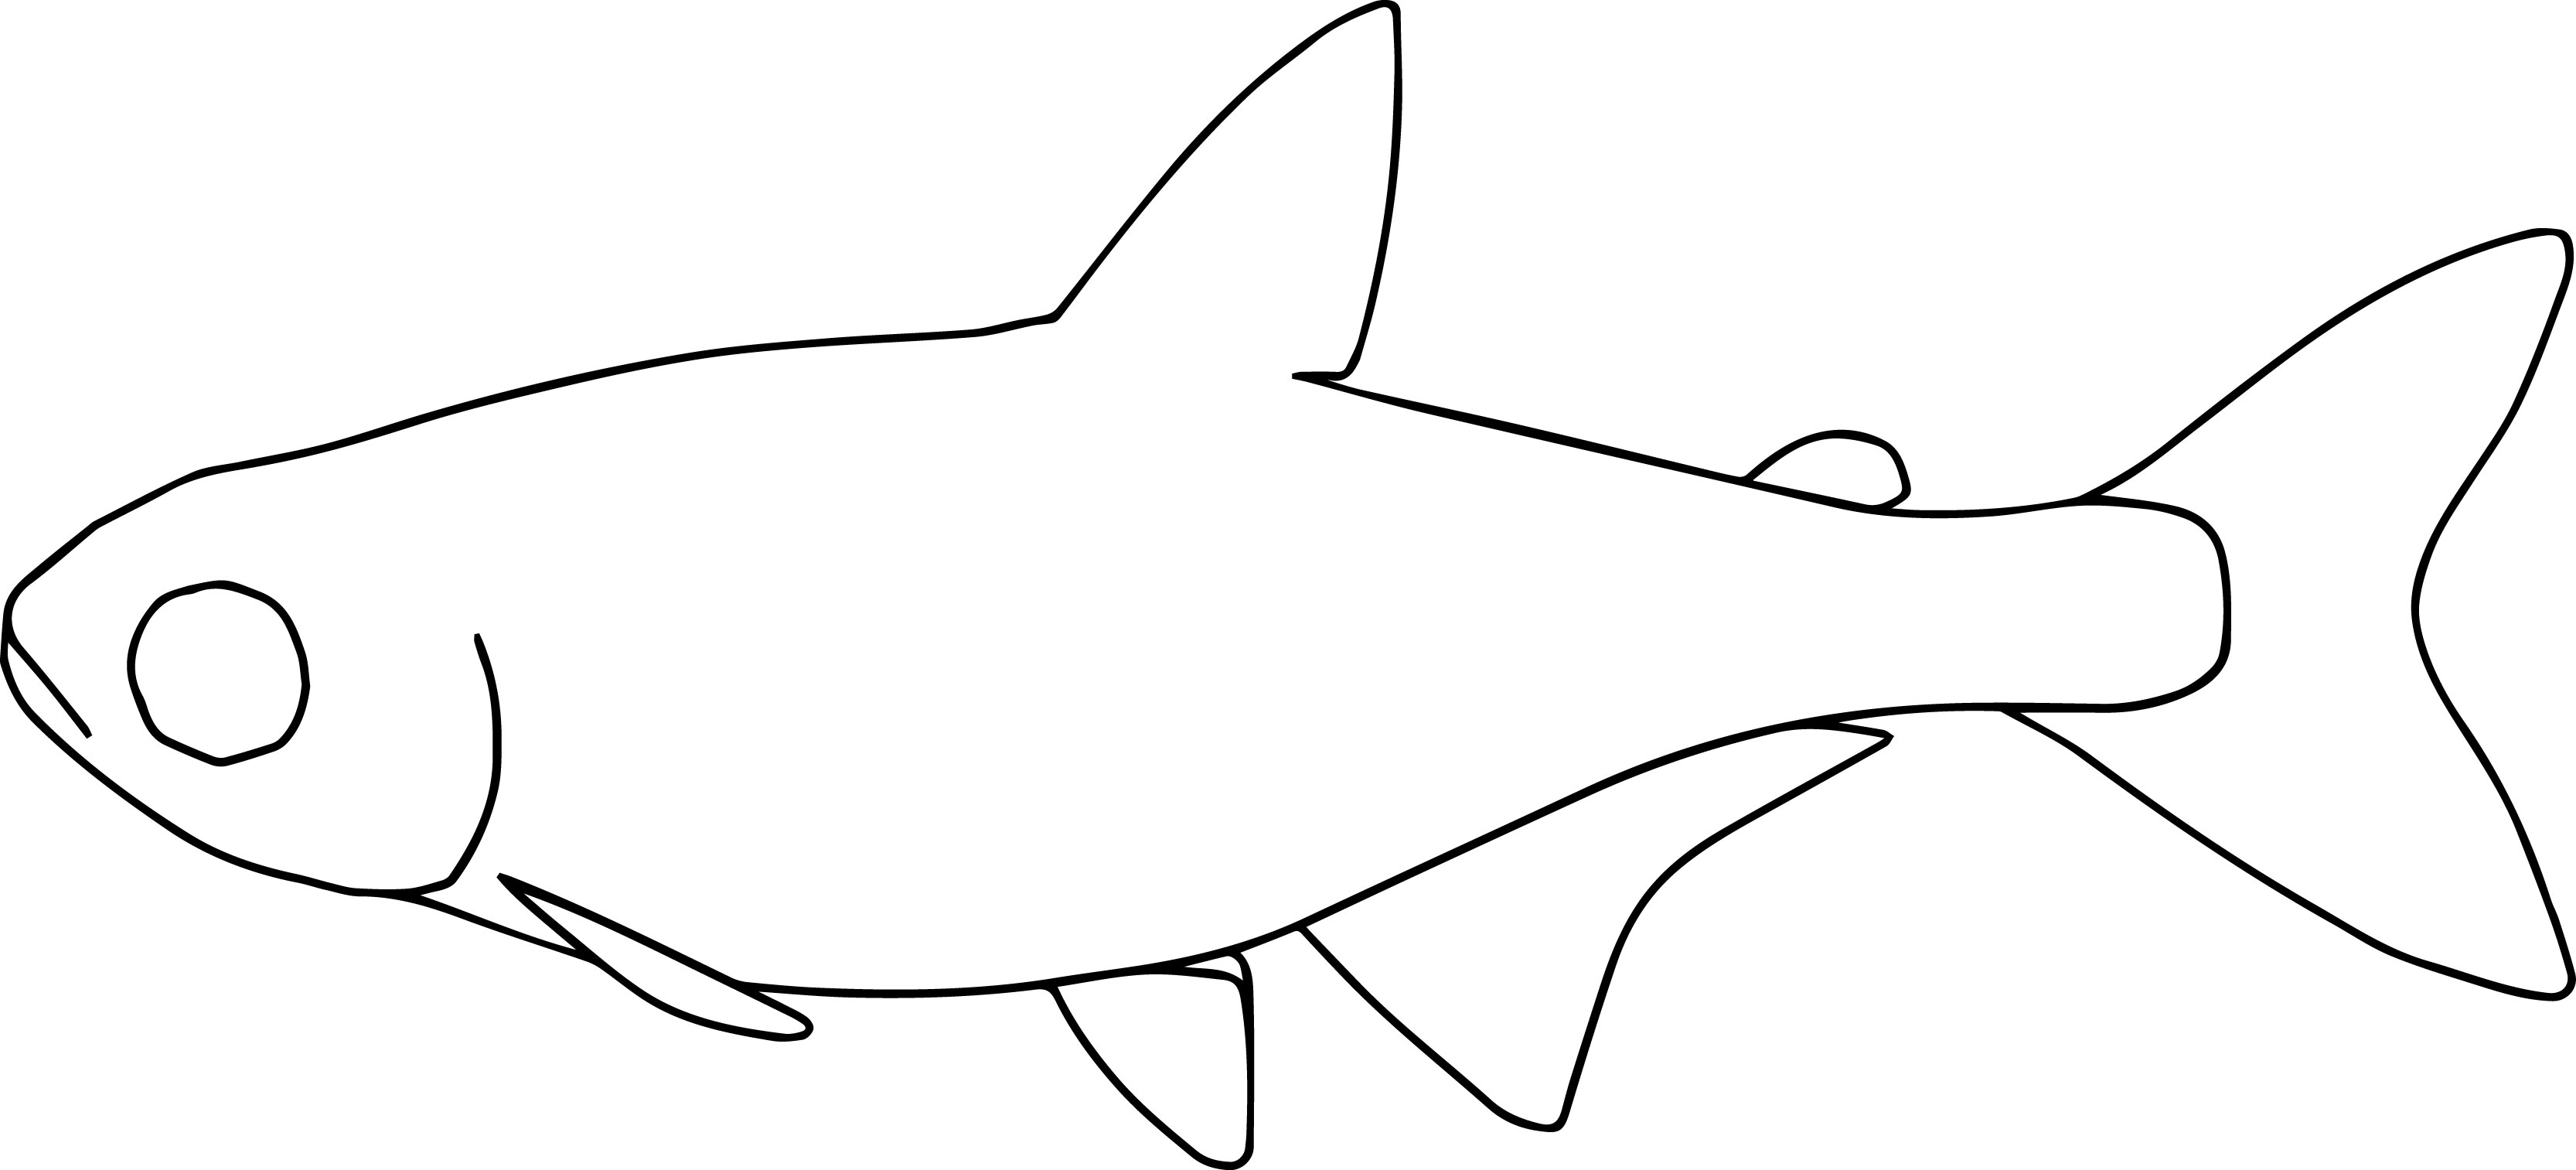 Fish21 Coloring Page